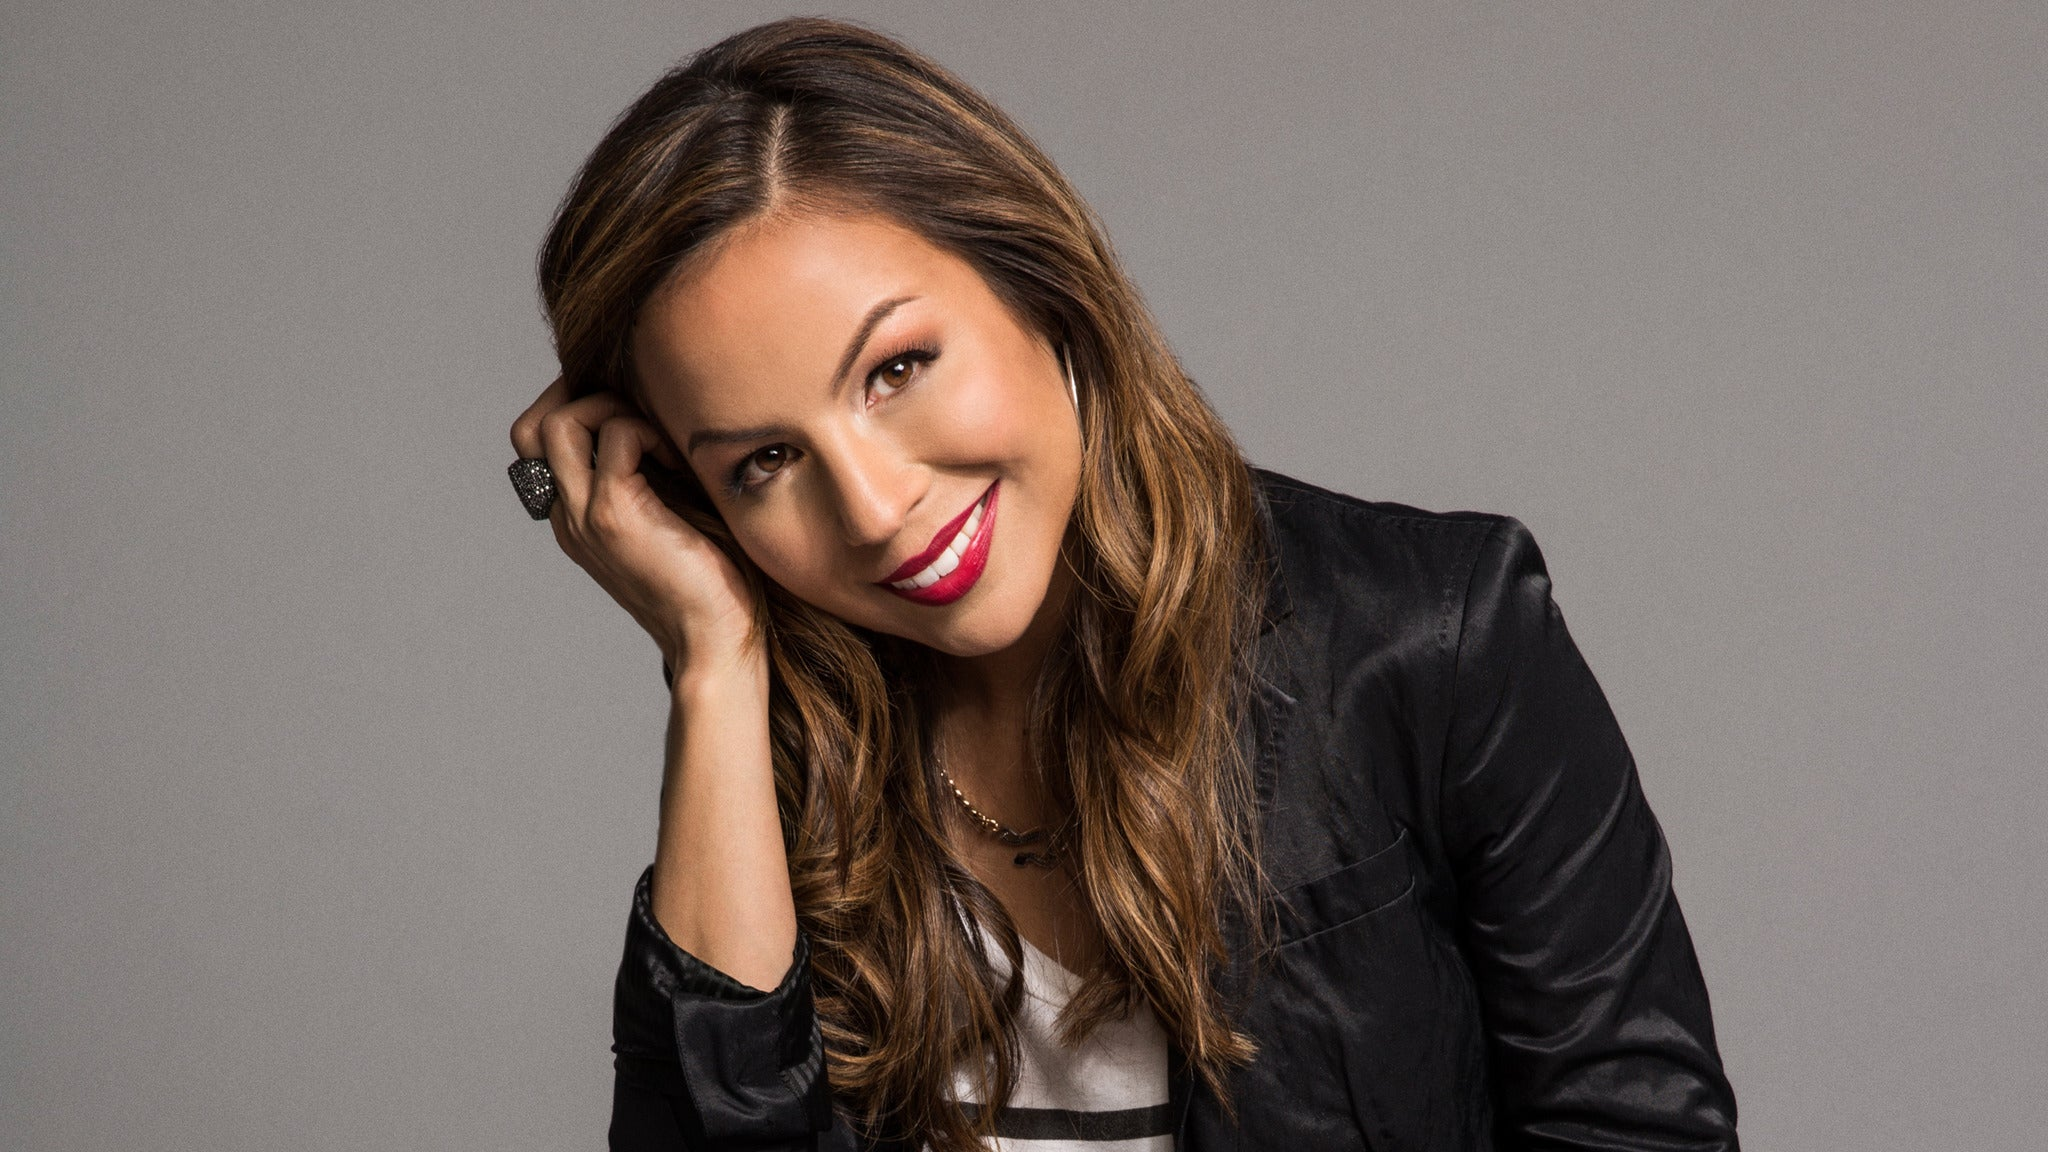 SORRY, THIS EVENT IS NO LONGER ACTIVE<br>Anjelah Johnson at Ontario Improv - Ontario, CA 91764